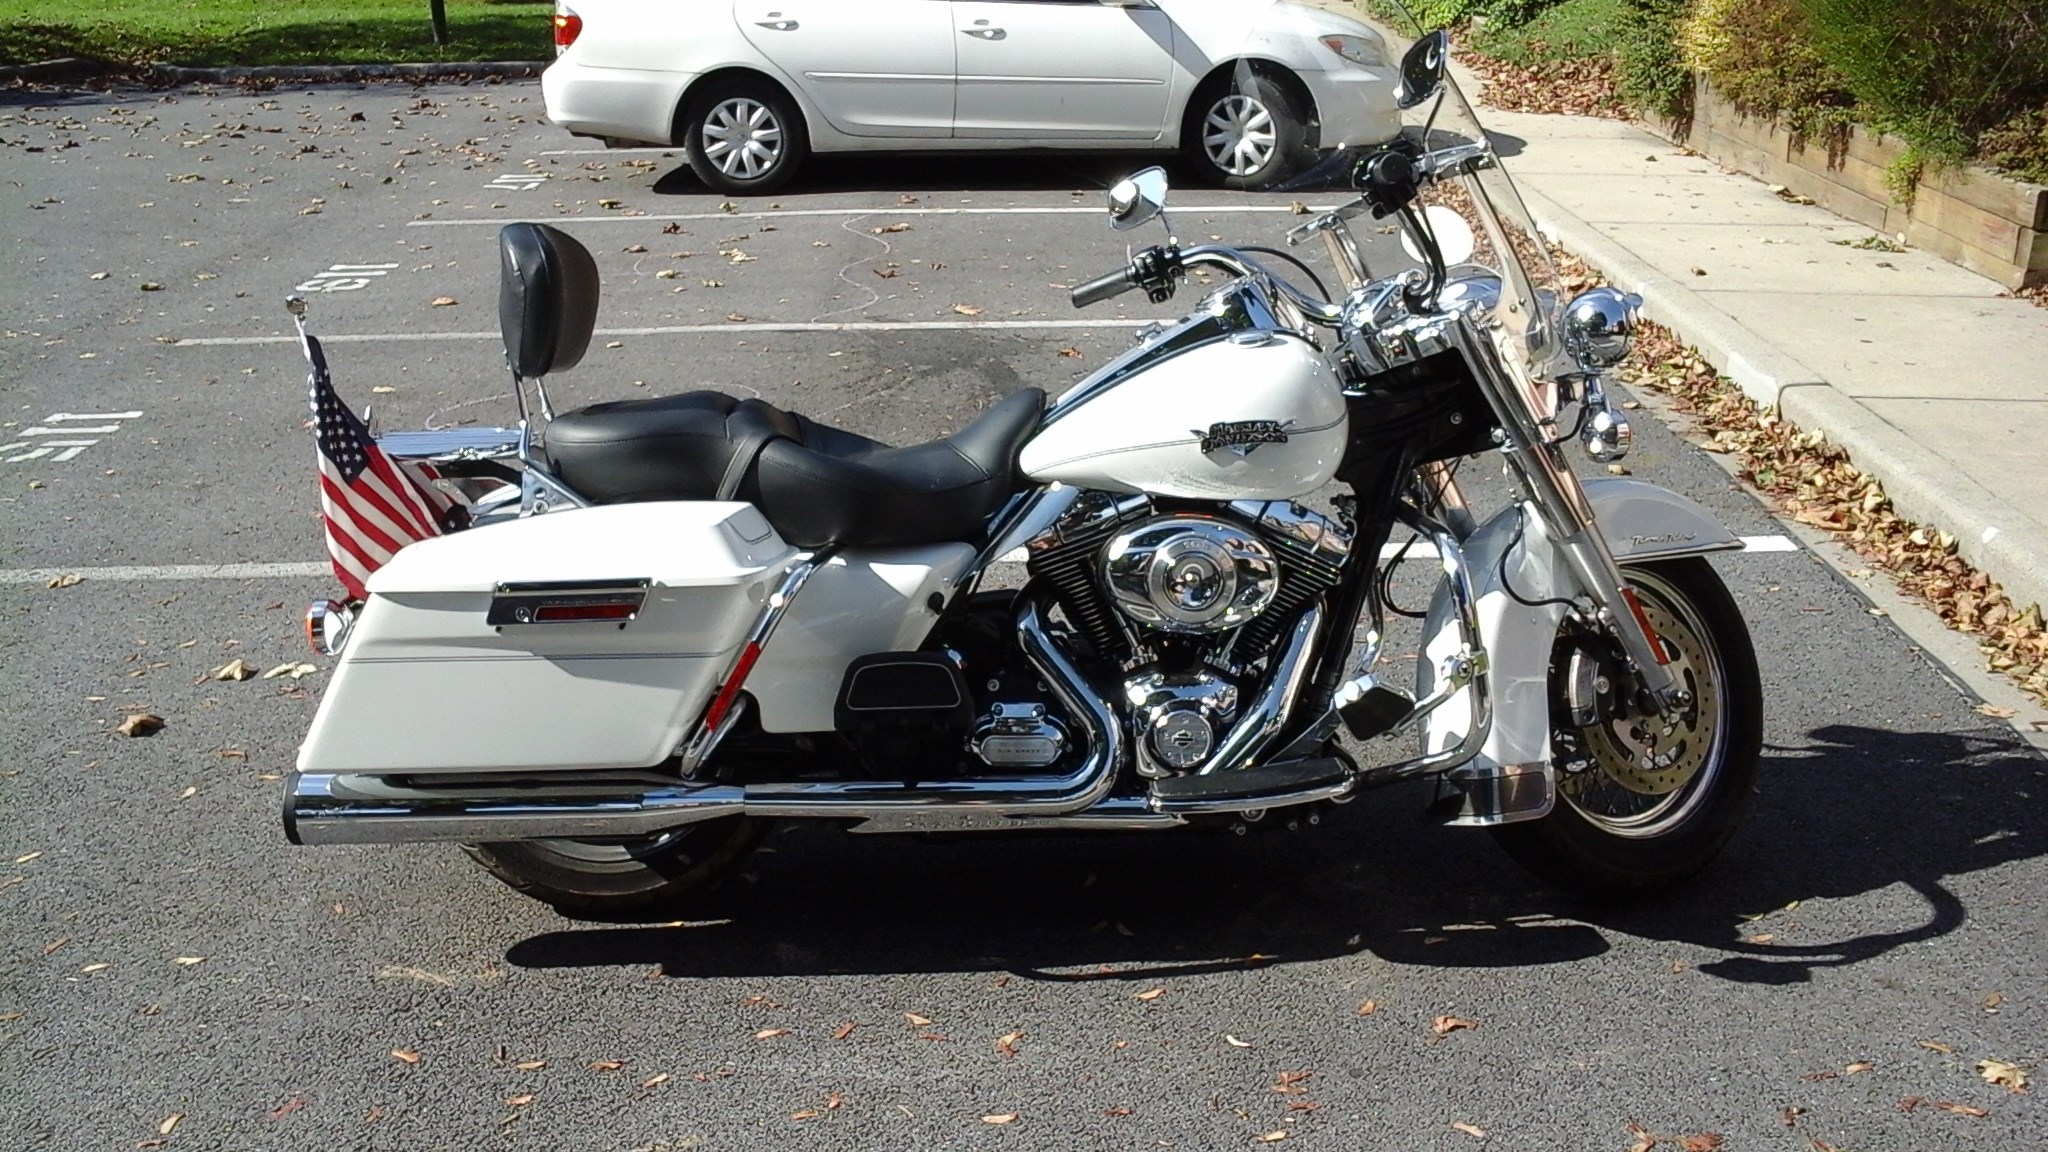 Used Harley Davidson Motorcycles For Sale San Marcos Ca >> 2013 Harley-Davidson® FLHRC/I Road King® Classic (Pearl White), Walkersville, Maryland (675073 ...